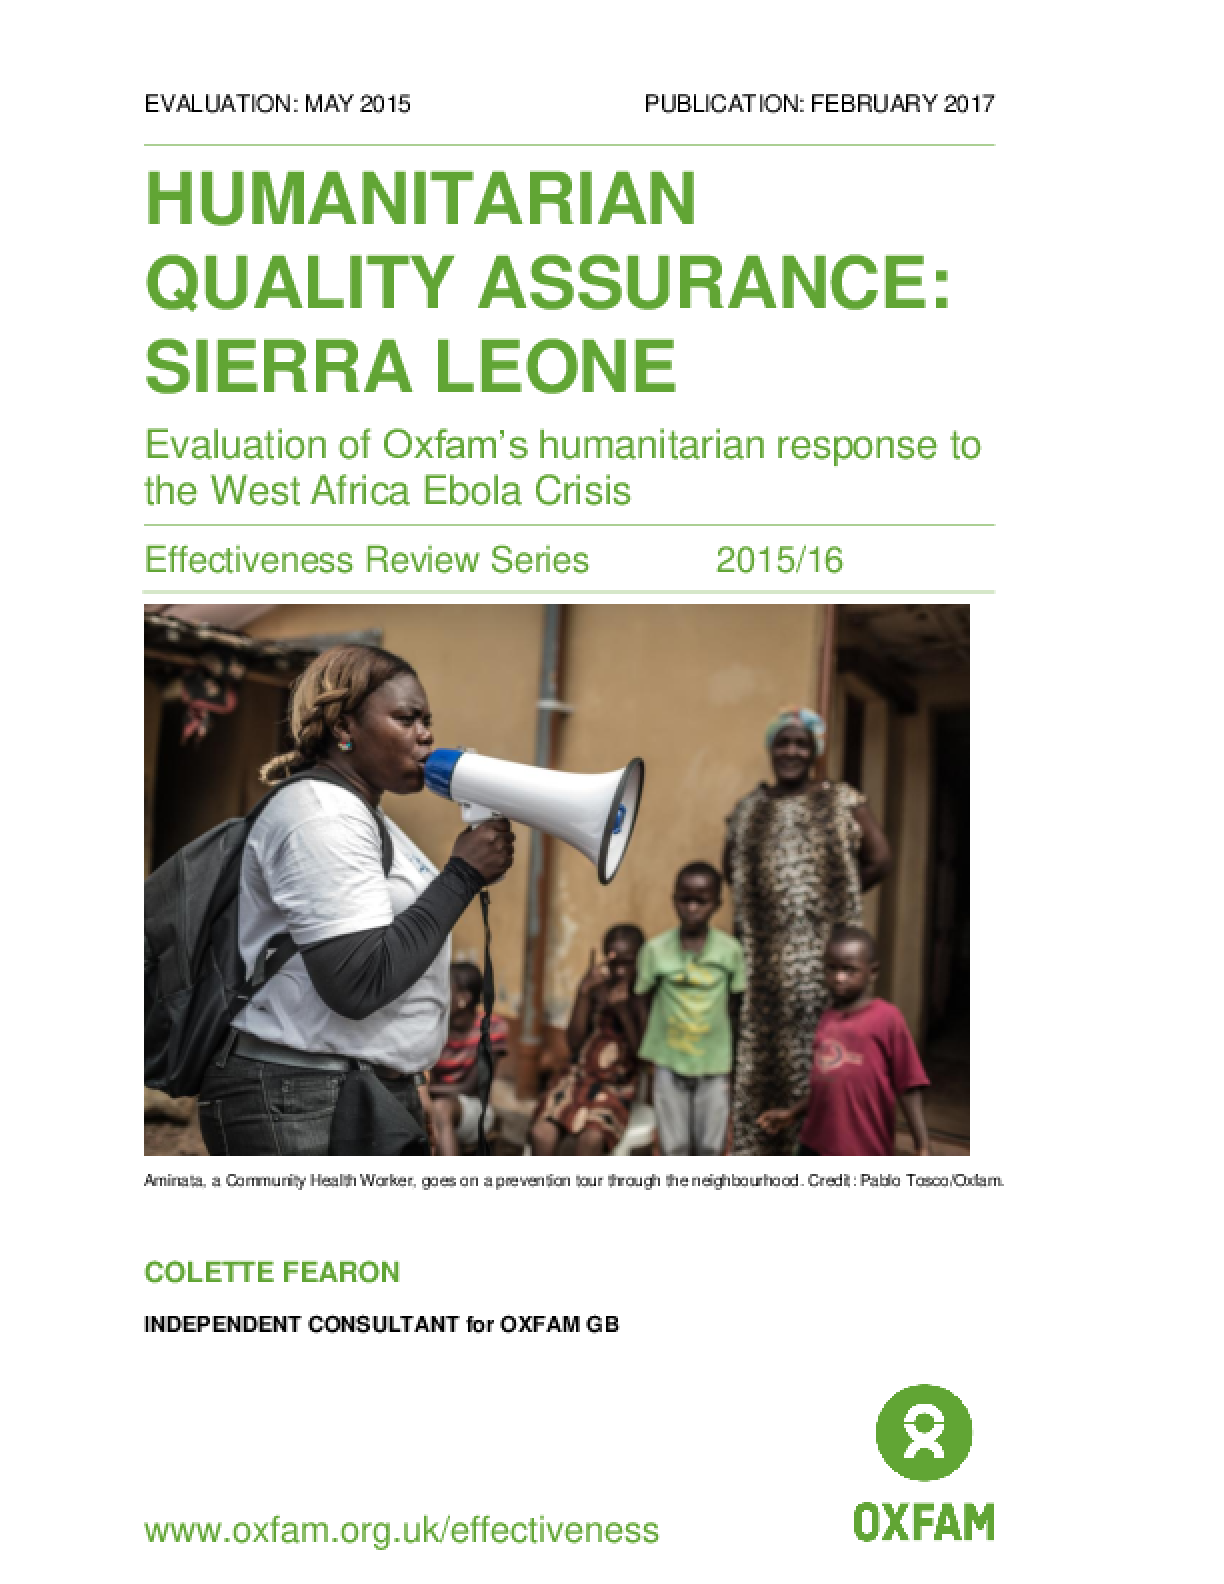 Humanitarian Quality Assurance - Sierra Leone: Evaluation of Oxfam's humanitarian response to the West Africa Ebola crisis